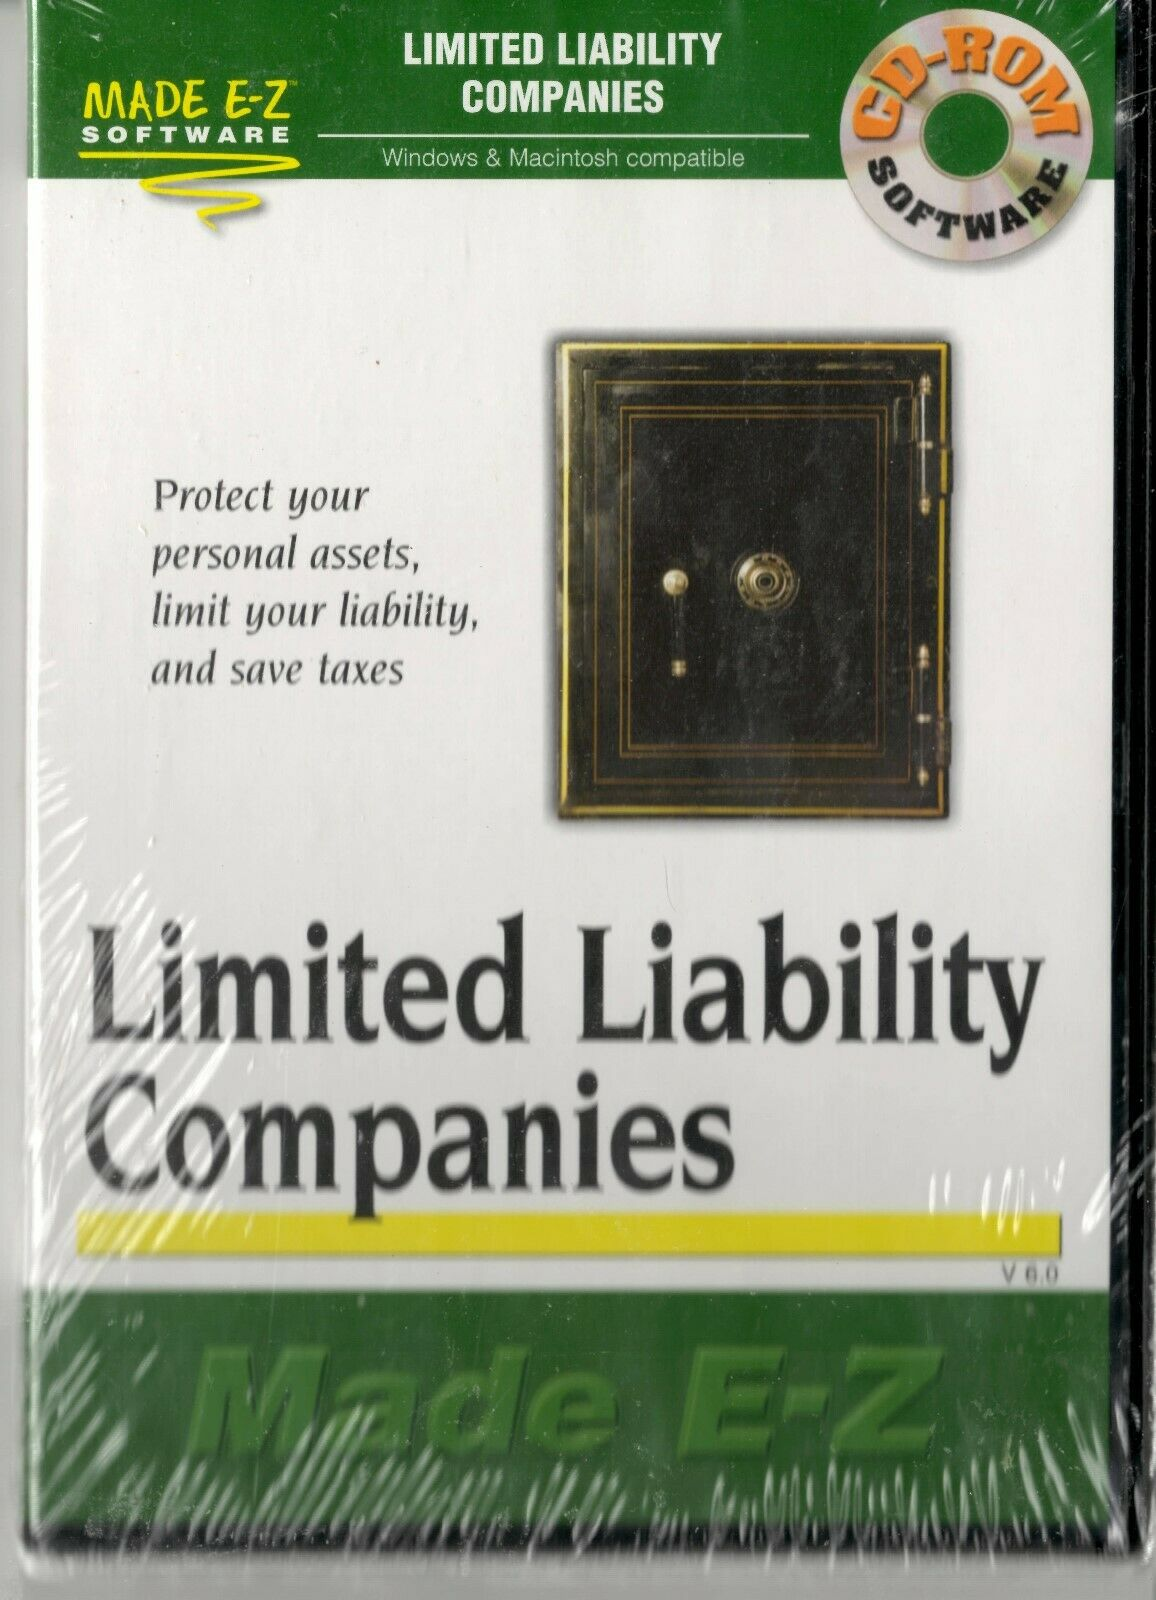 Made E-Z Software - Limited Liability Companies - CD-ROM 2001